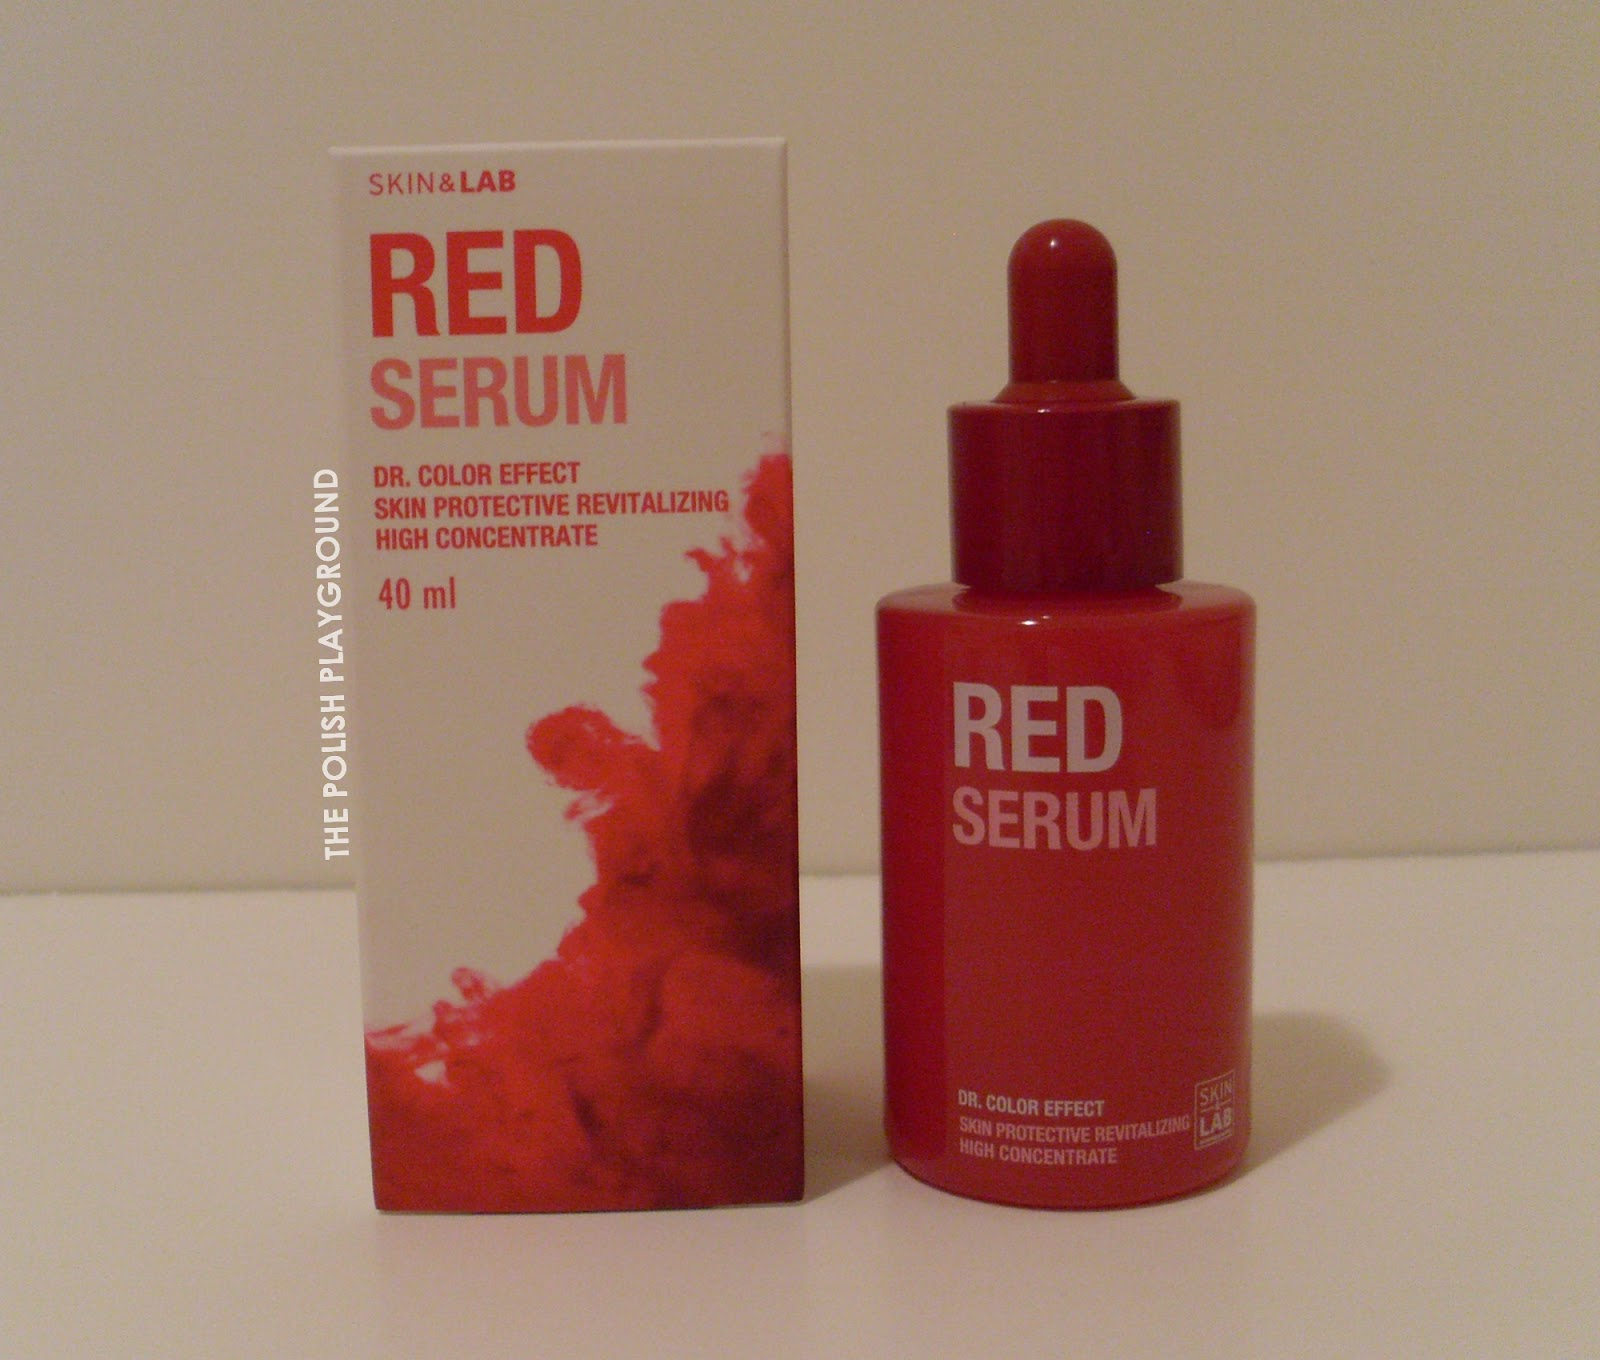 Wishtrend Haul - Skin&Lab Red Serum